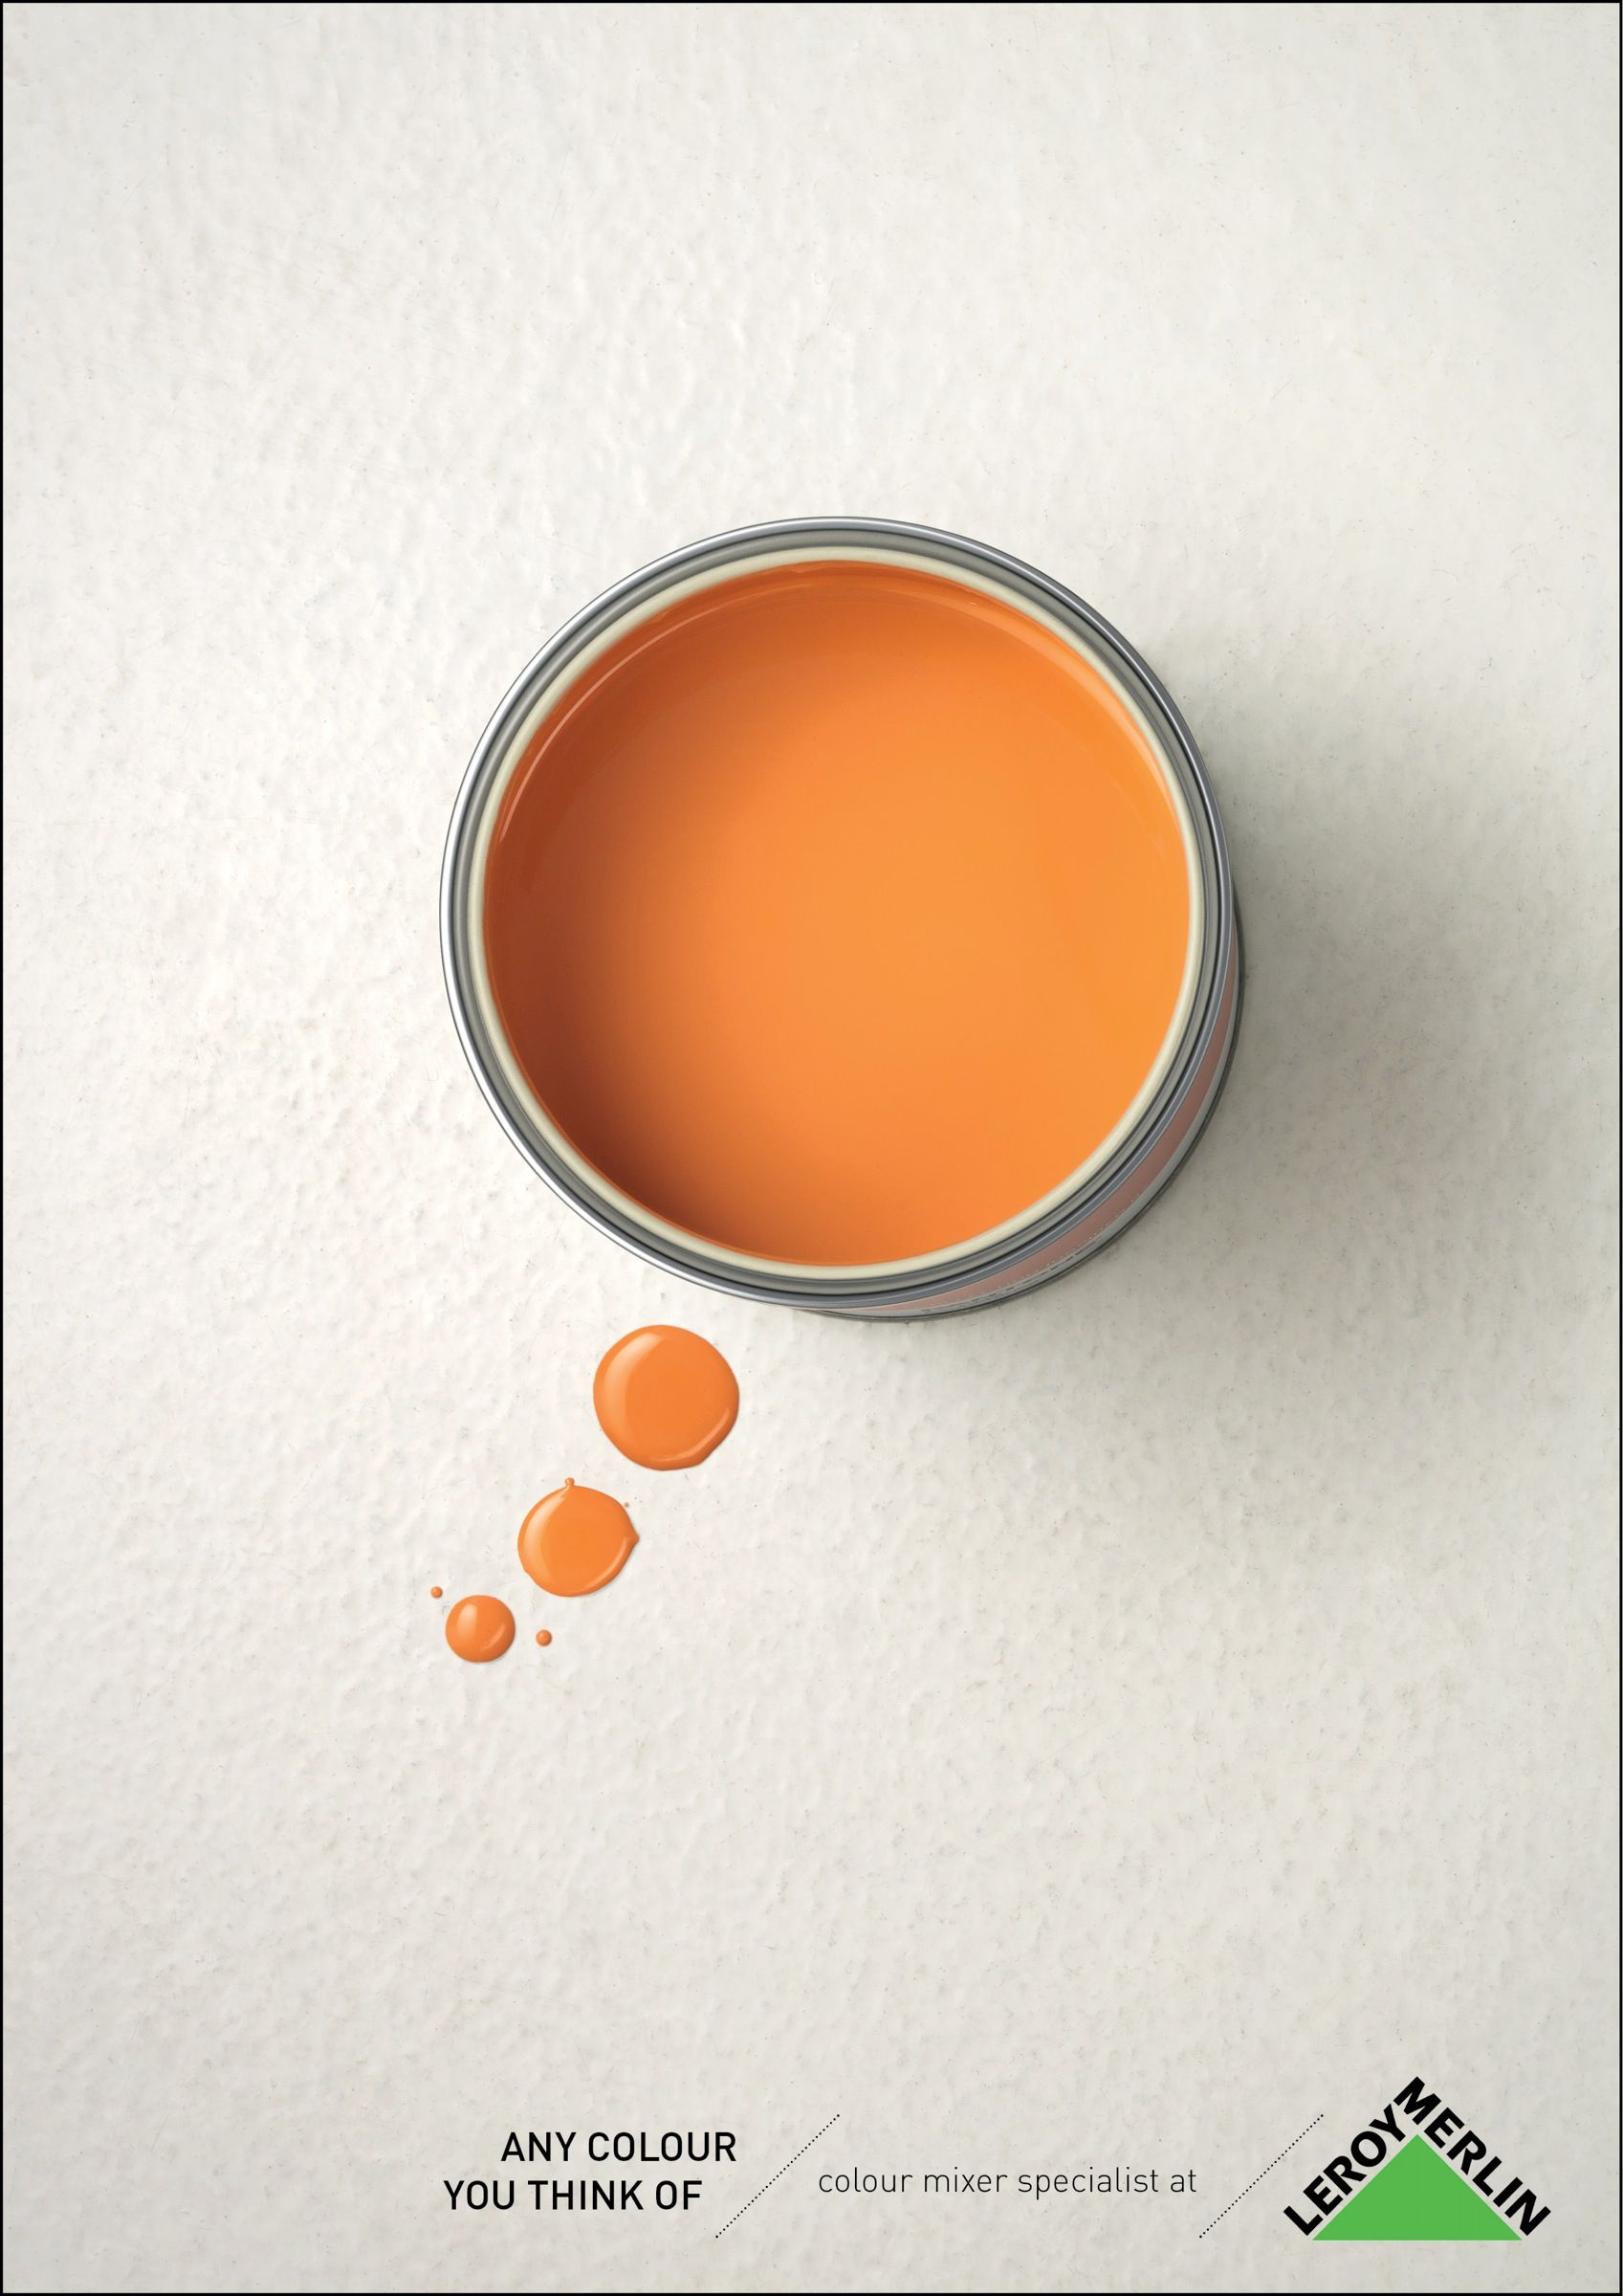 Any Colour You Think Of Advertising Agency Publicis Italy Executive Creative Directors Bruno Ber Ads Creative Advertising Design Print Advertising